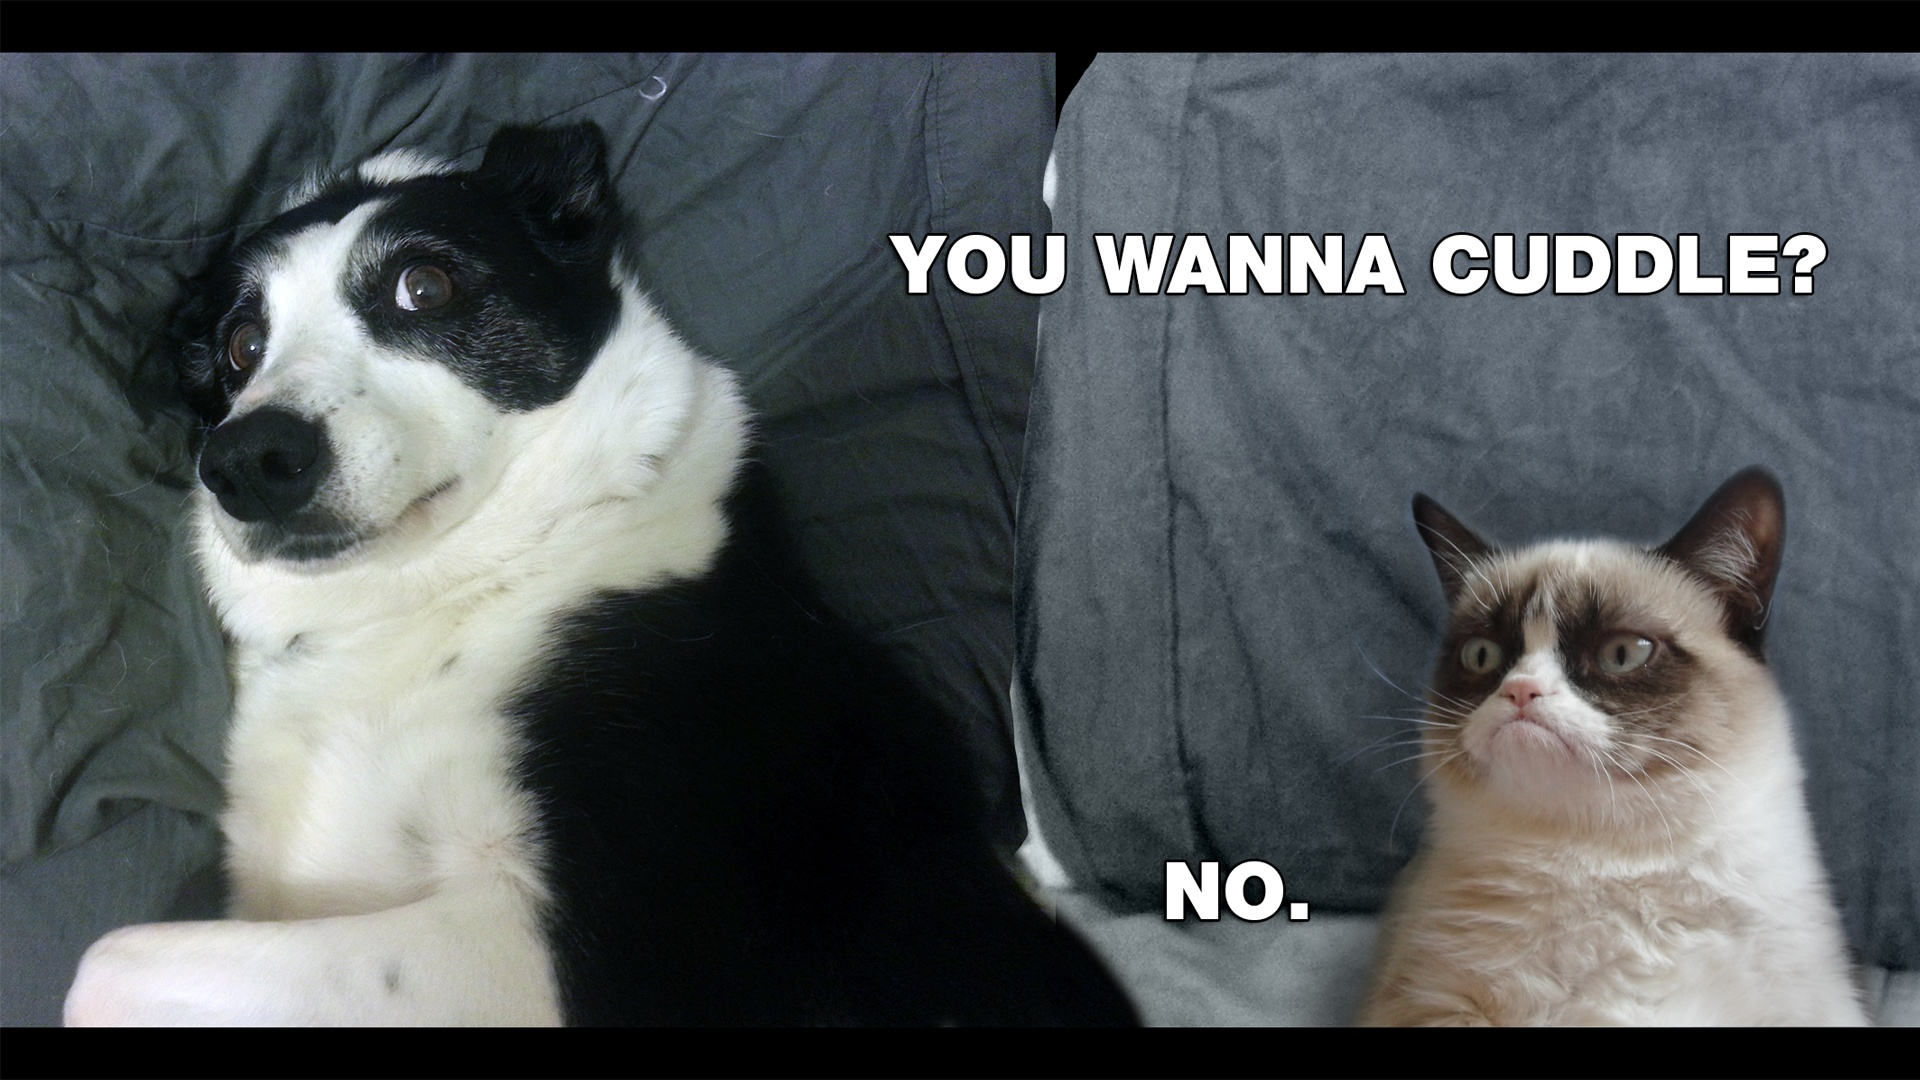 cuddle NO Grumpy Cat meme HD desktop wallpaper JikoBlog 1920x1080